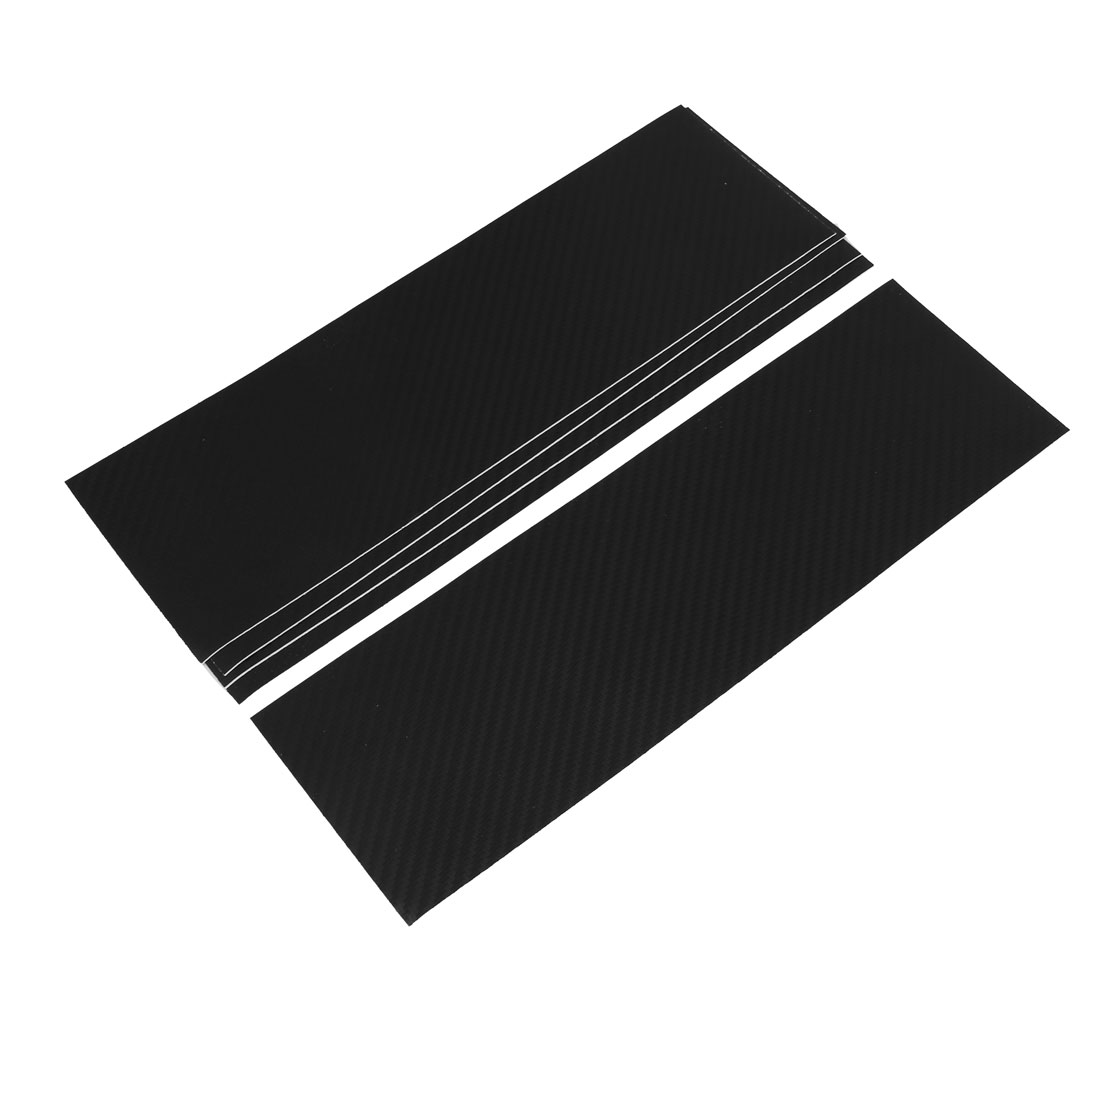 5pcs 300 x 92mm Self Adhesive Carbon Fiber Protective Film Sticker Black for Car